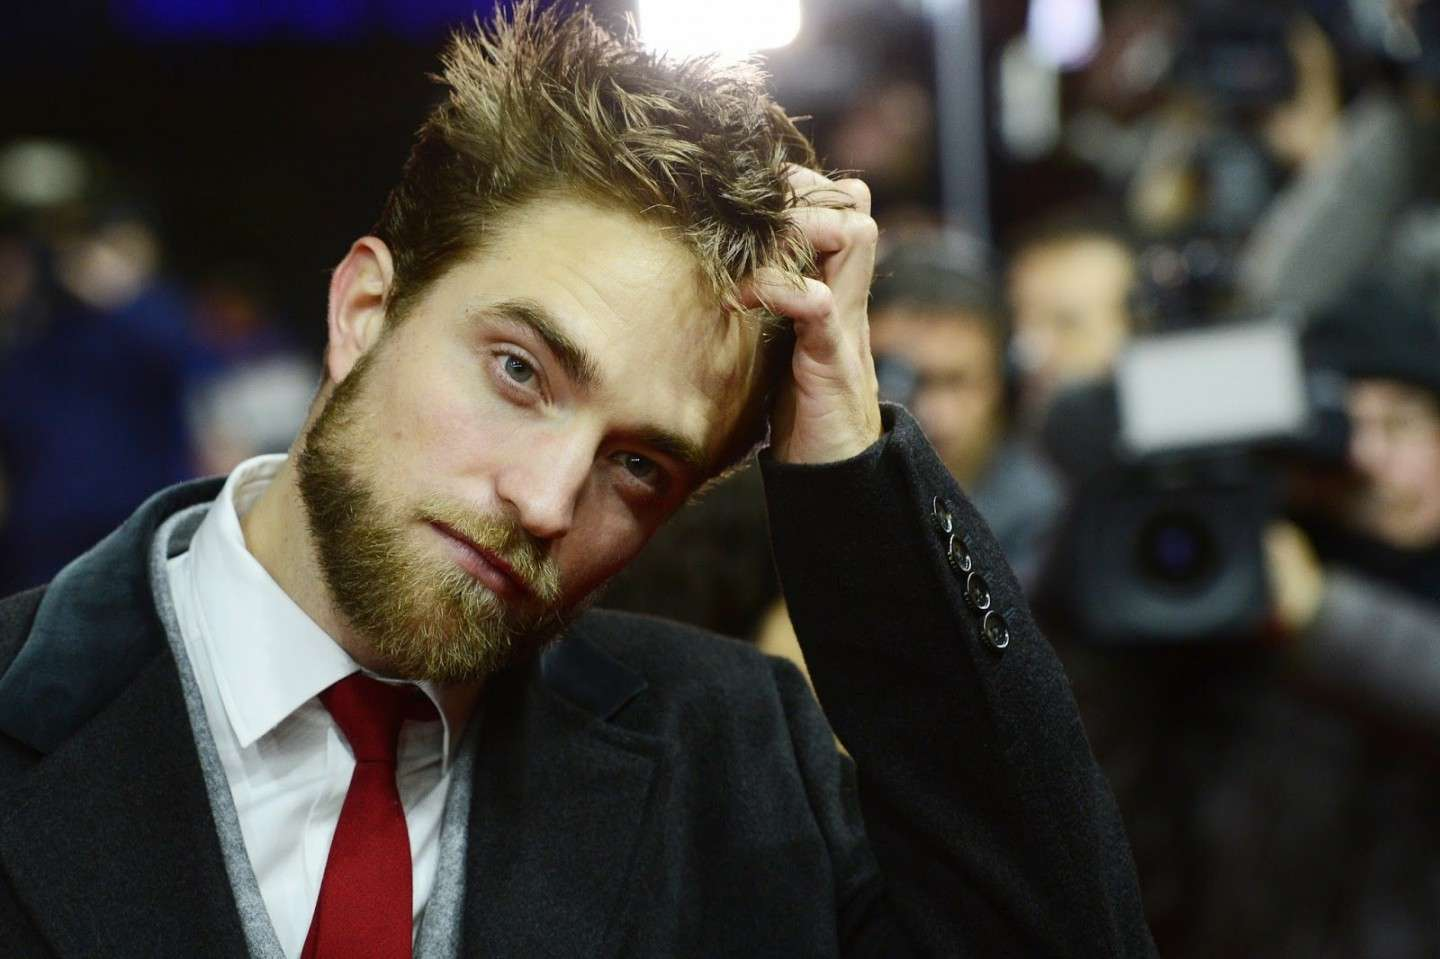 Fidanzate di Robert Pattinson